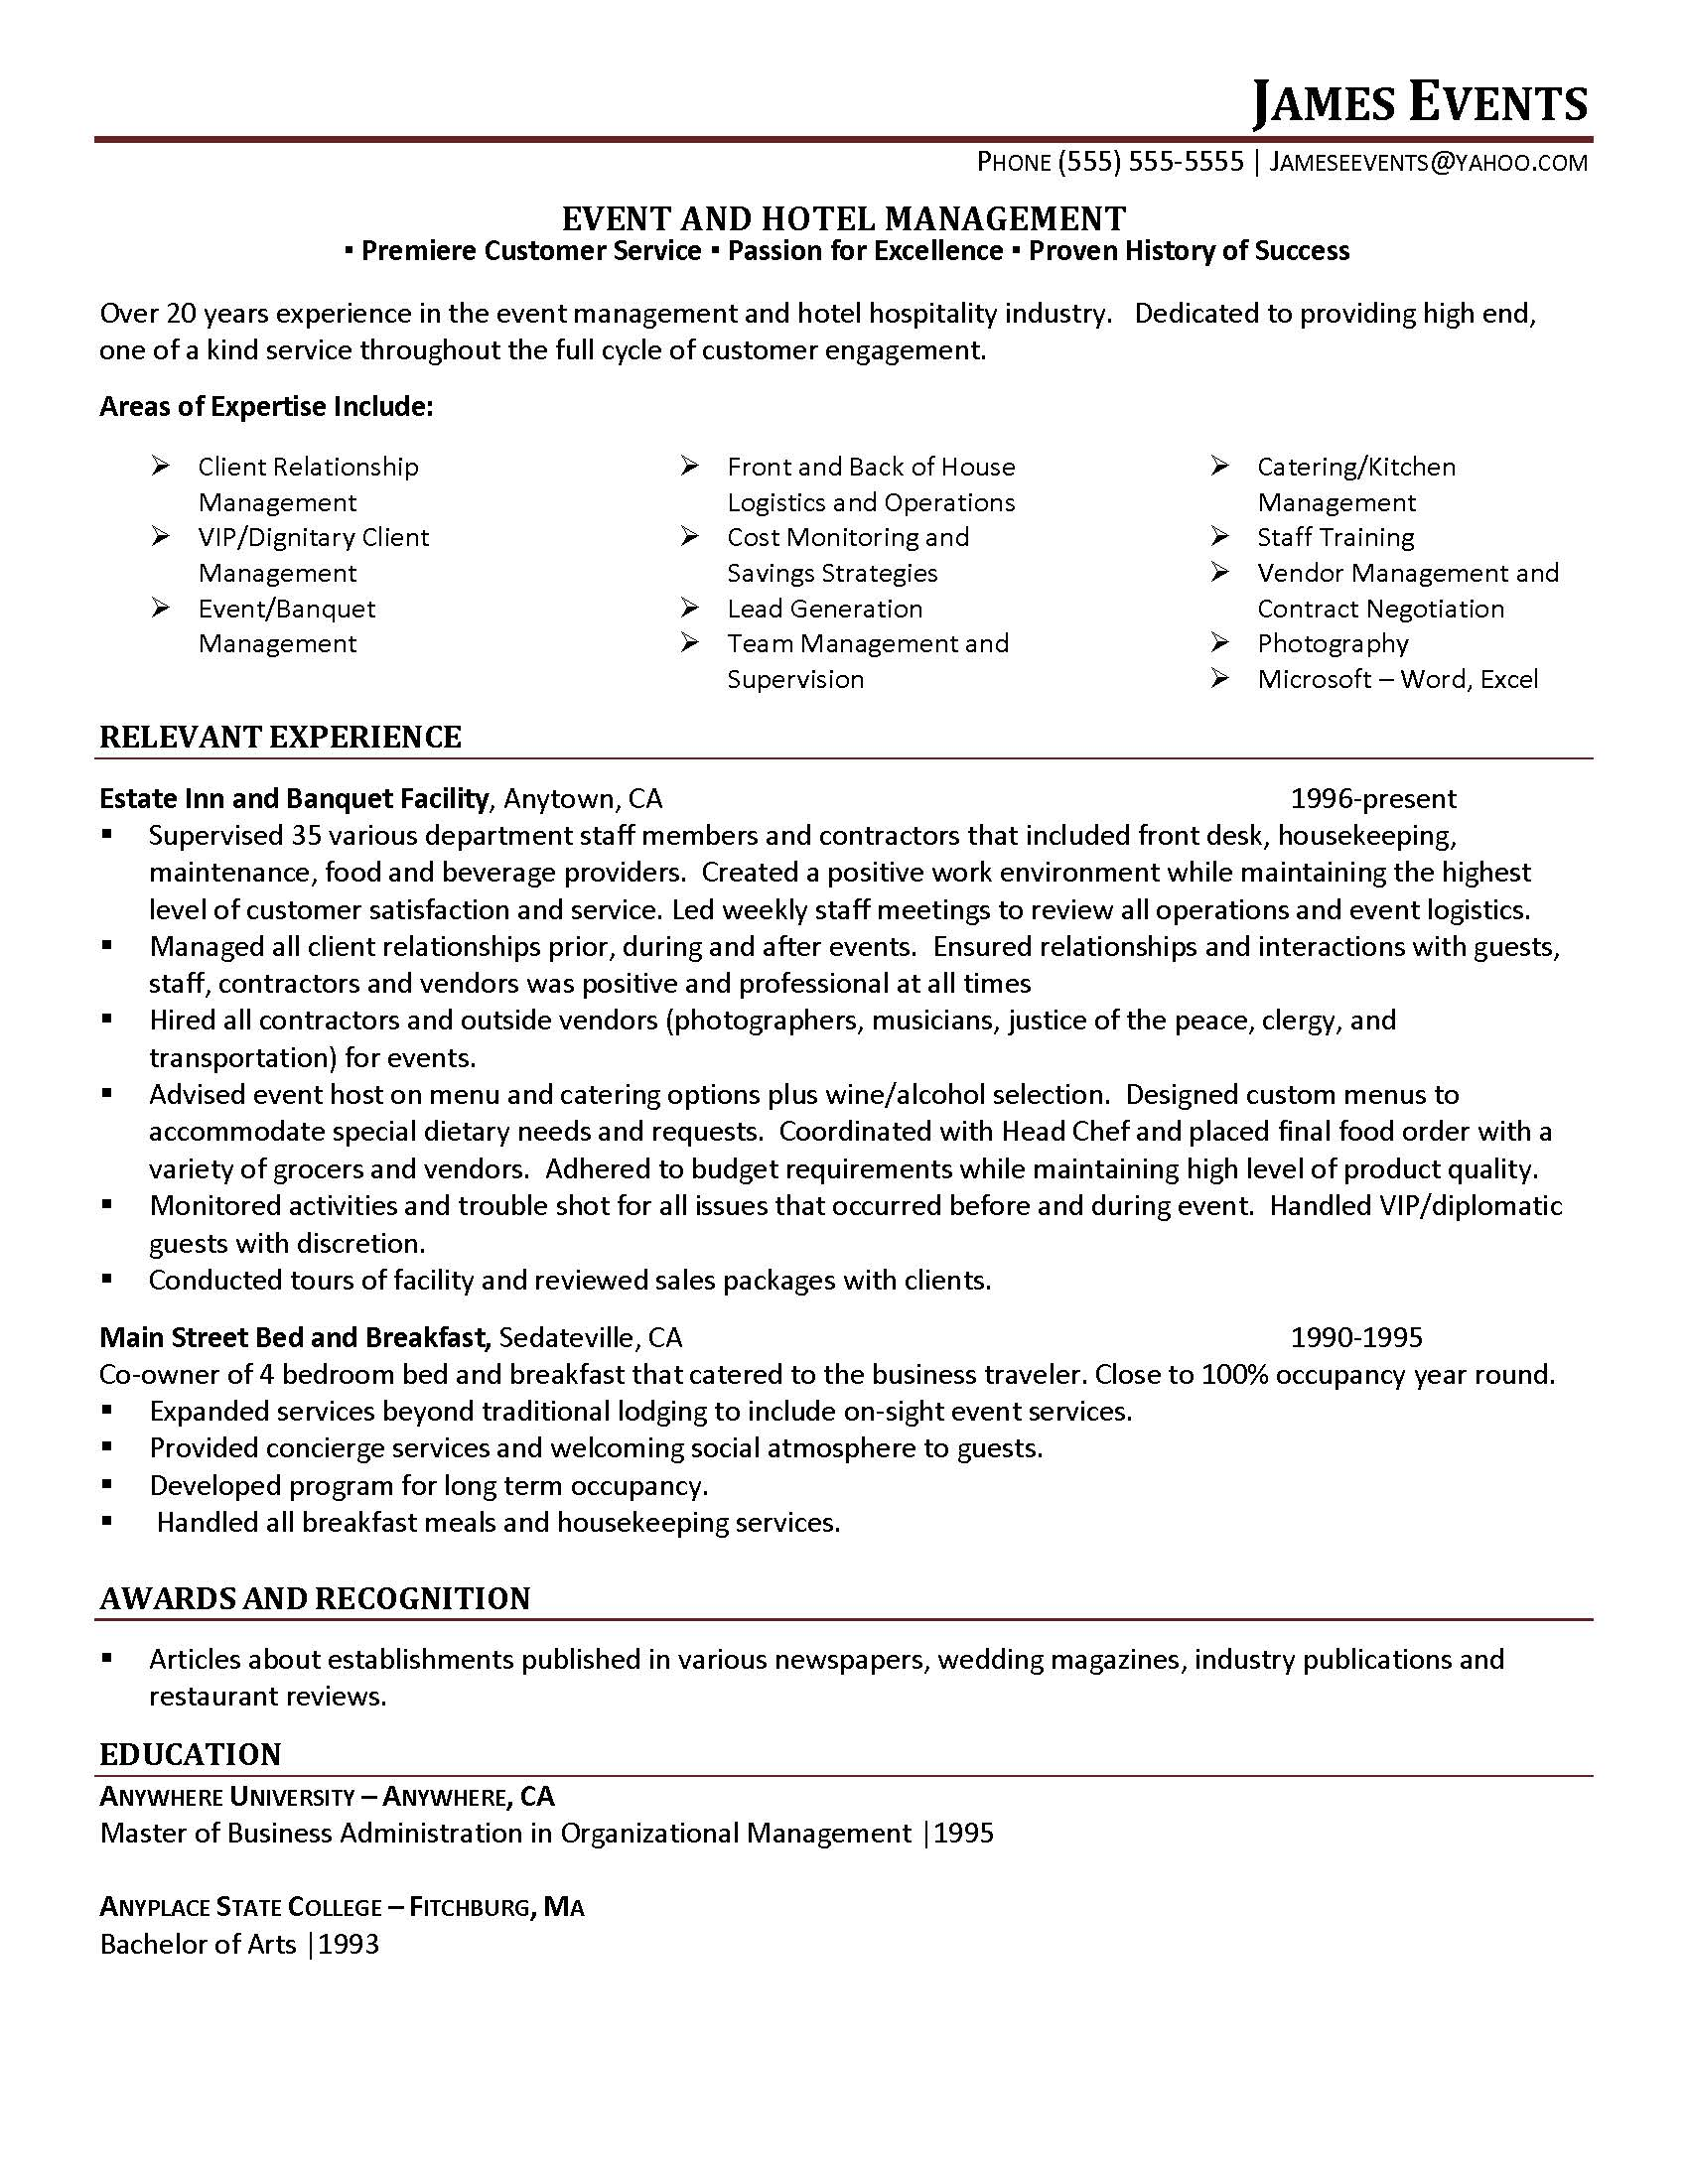 Events Coordinator Resume event coordinator resume sample resume – Events Coordinator Resume